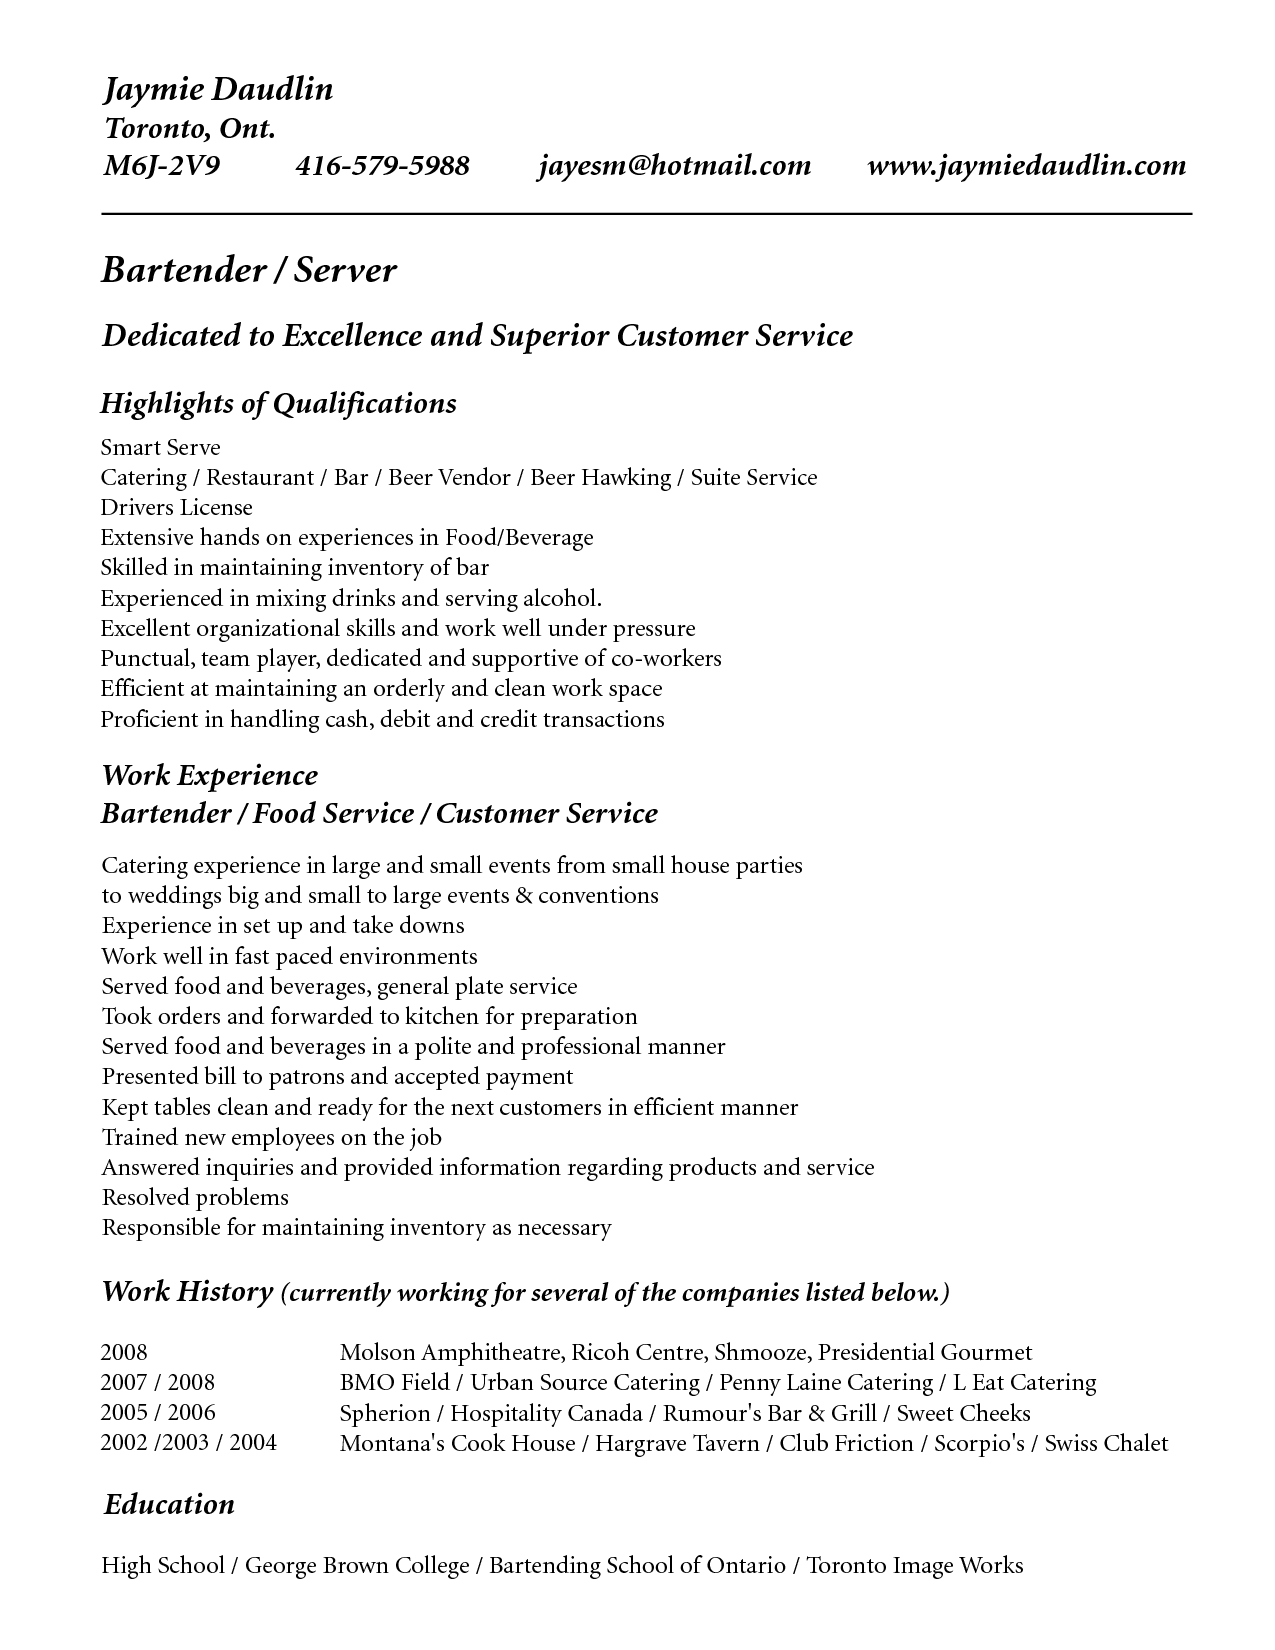 Resume Template For Bartender No Experience Http Www